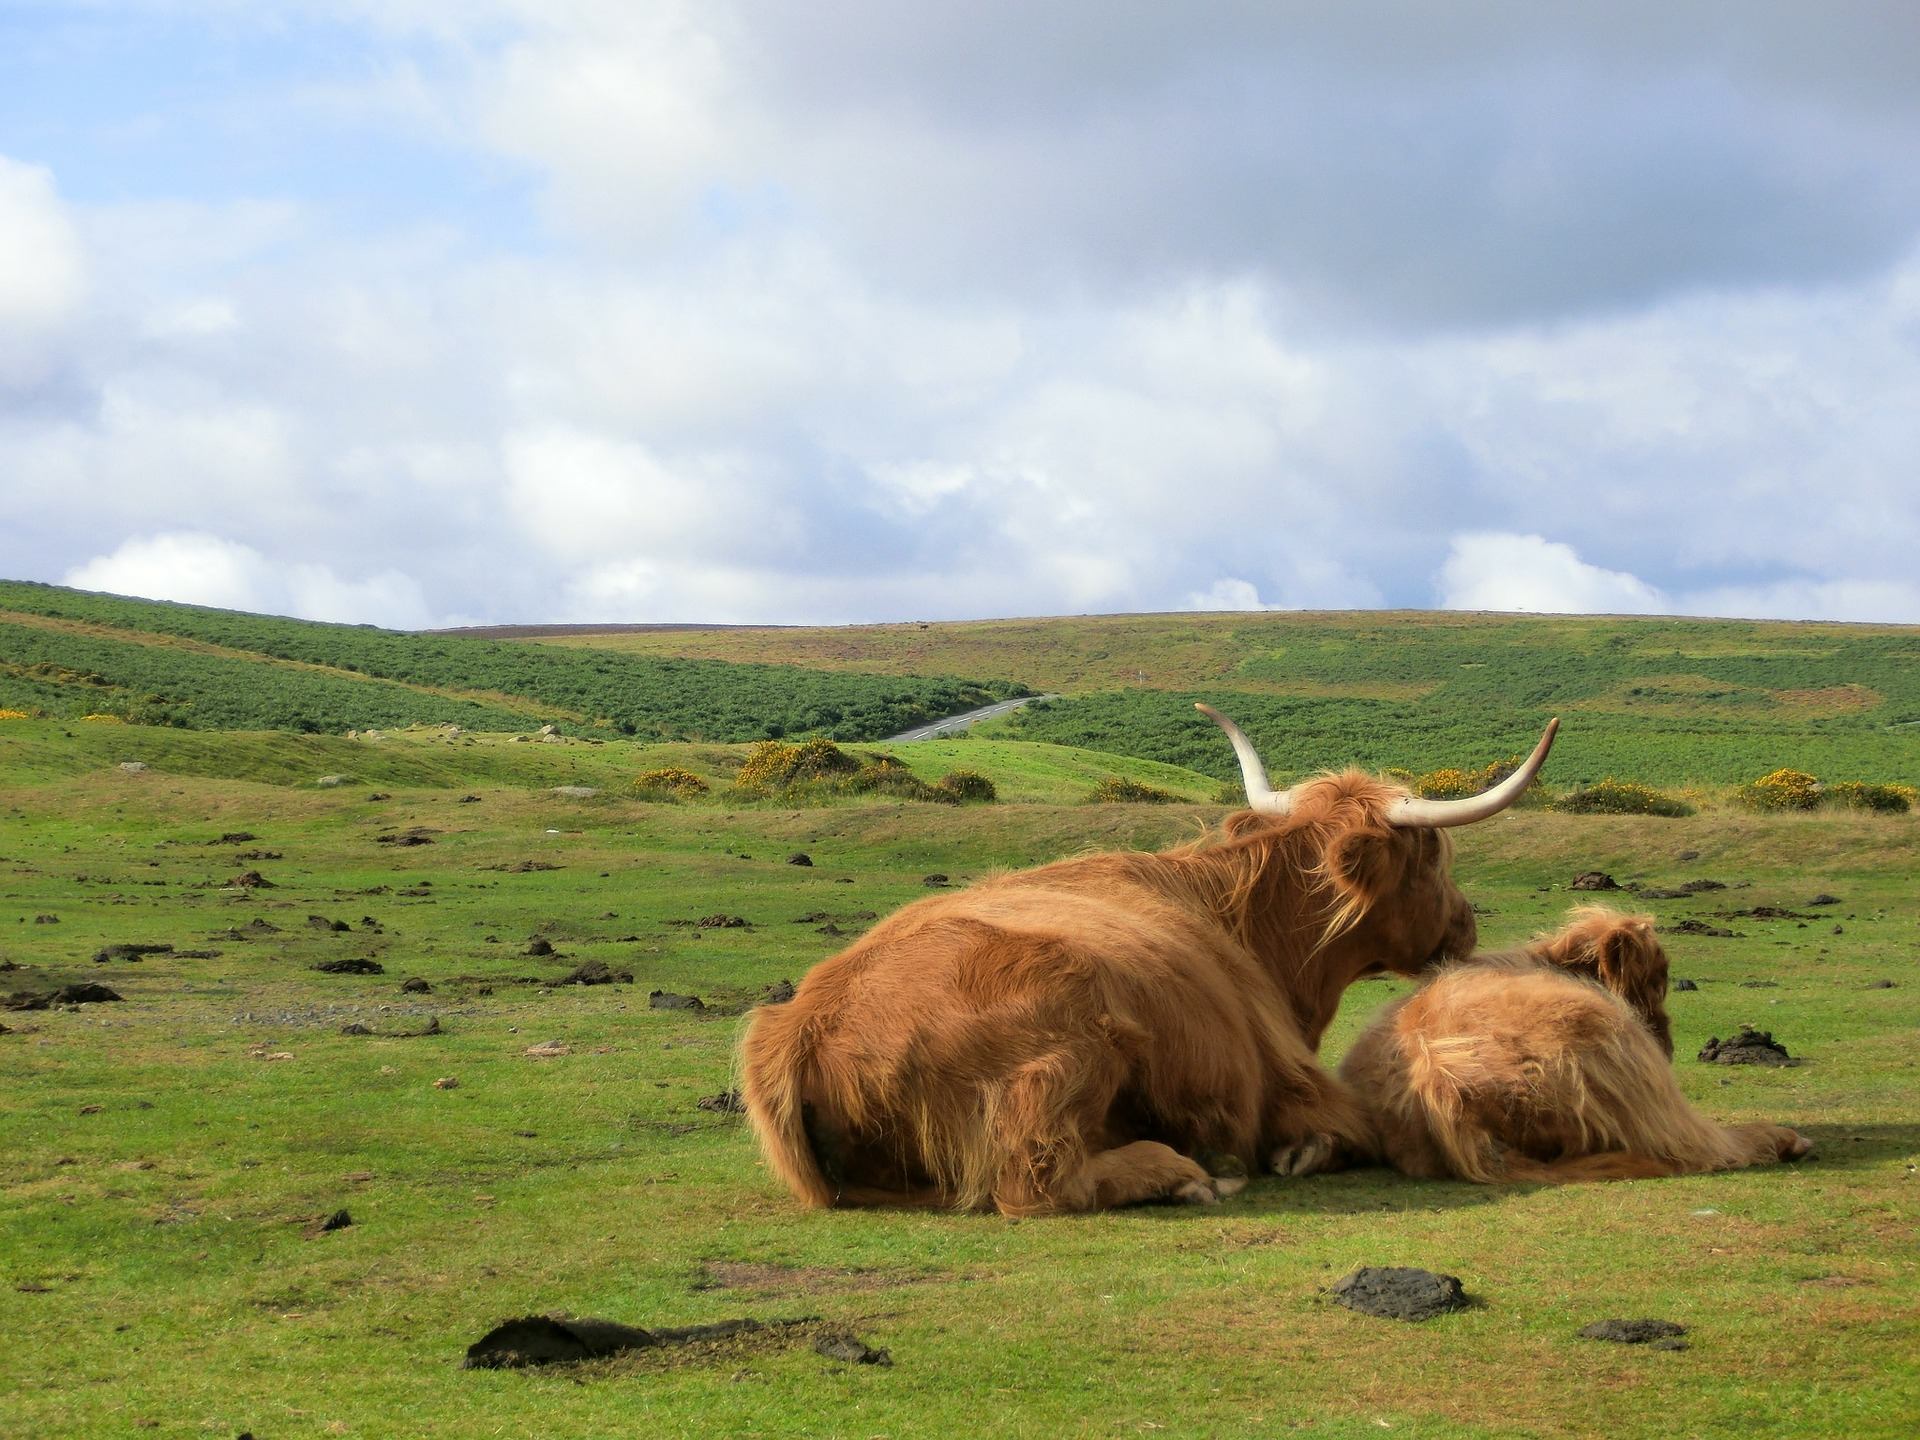 Things to do on Dartmoor - see the wild animals